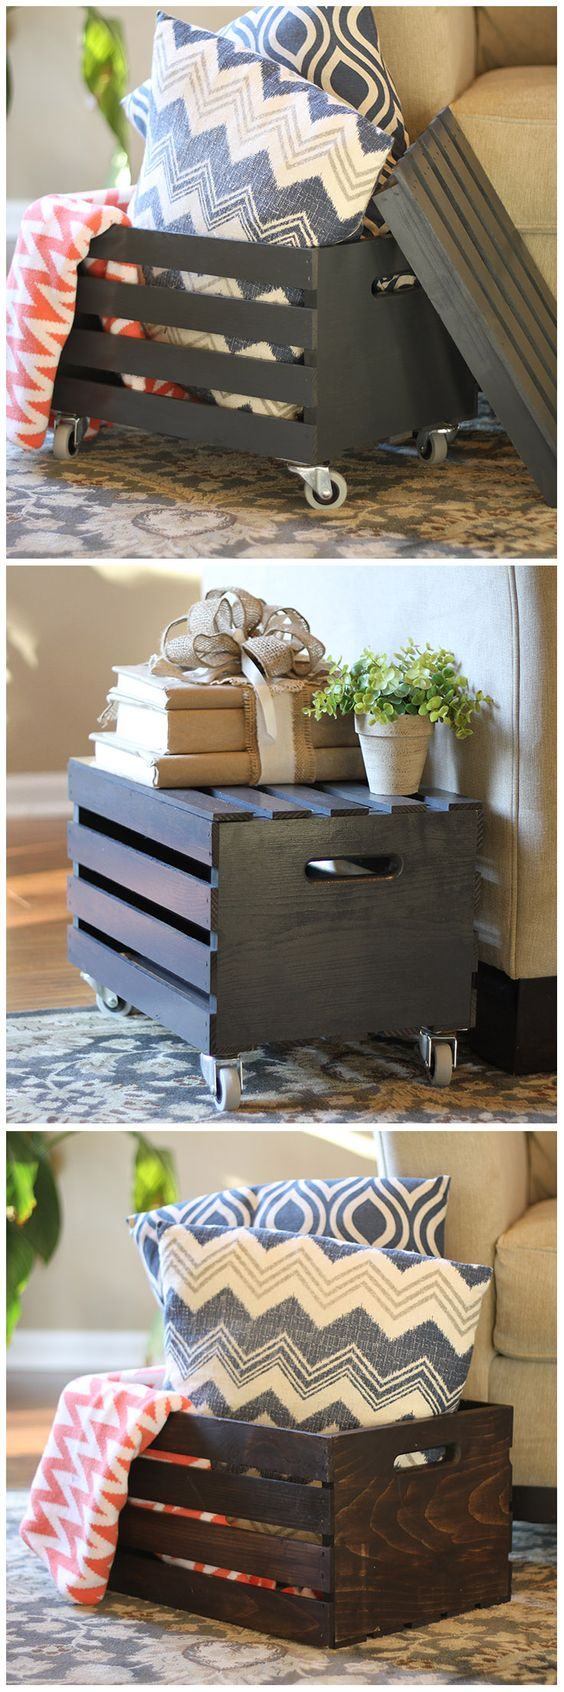 Wood crates aren't just for rustic style, they are quite versatile! Use them as an ottoman, an end table or just a simple storage unit. Check out our selection of wooden crates for your next organization project.